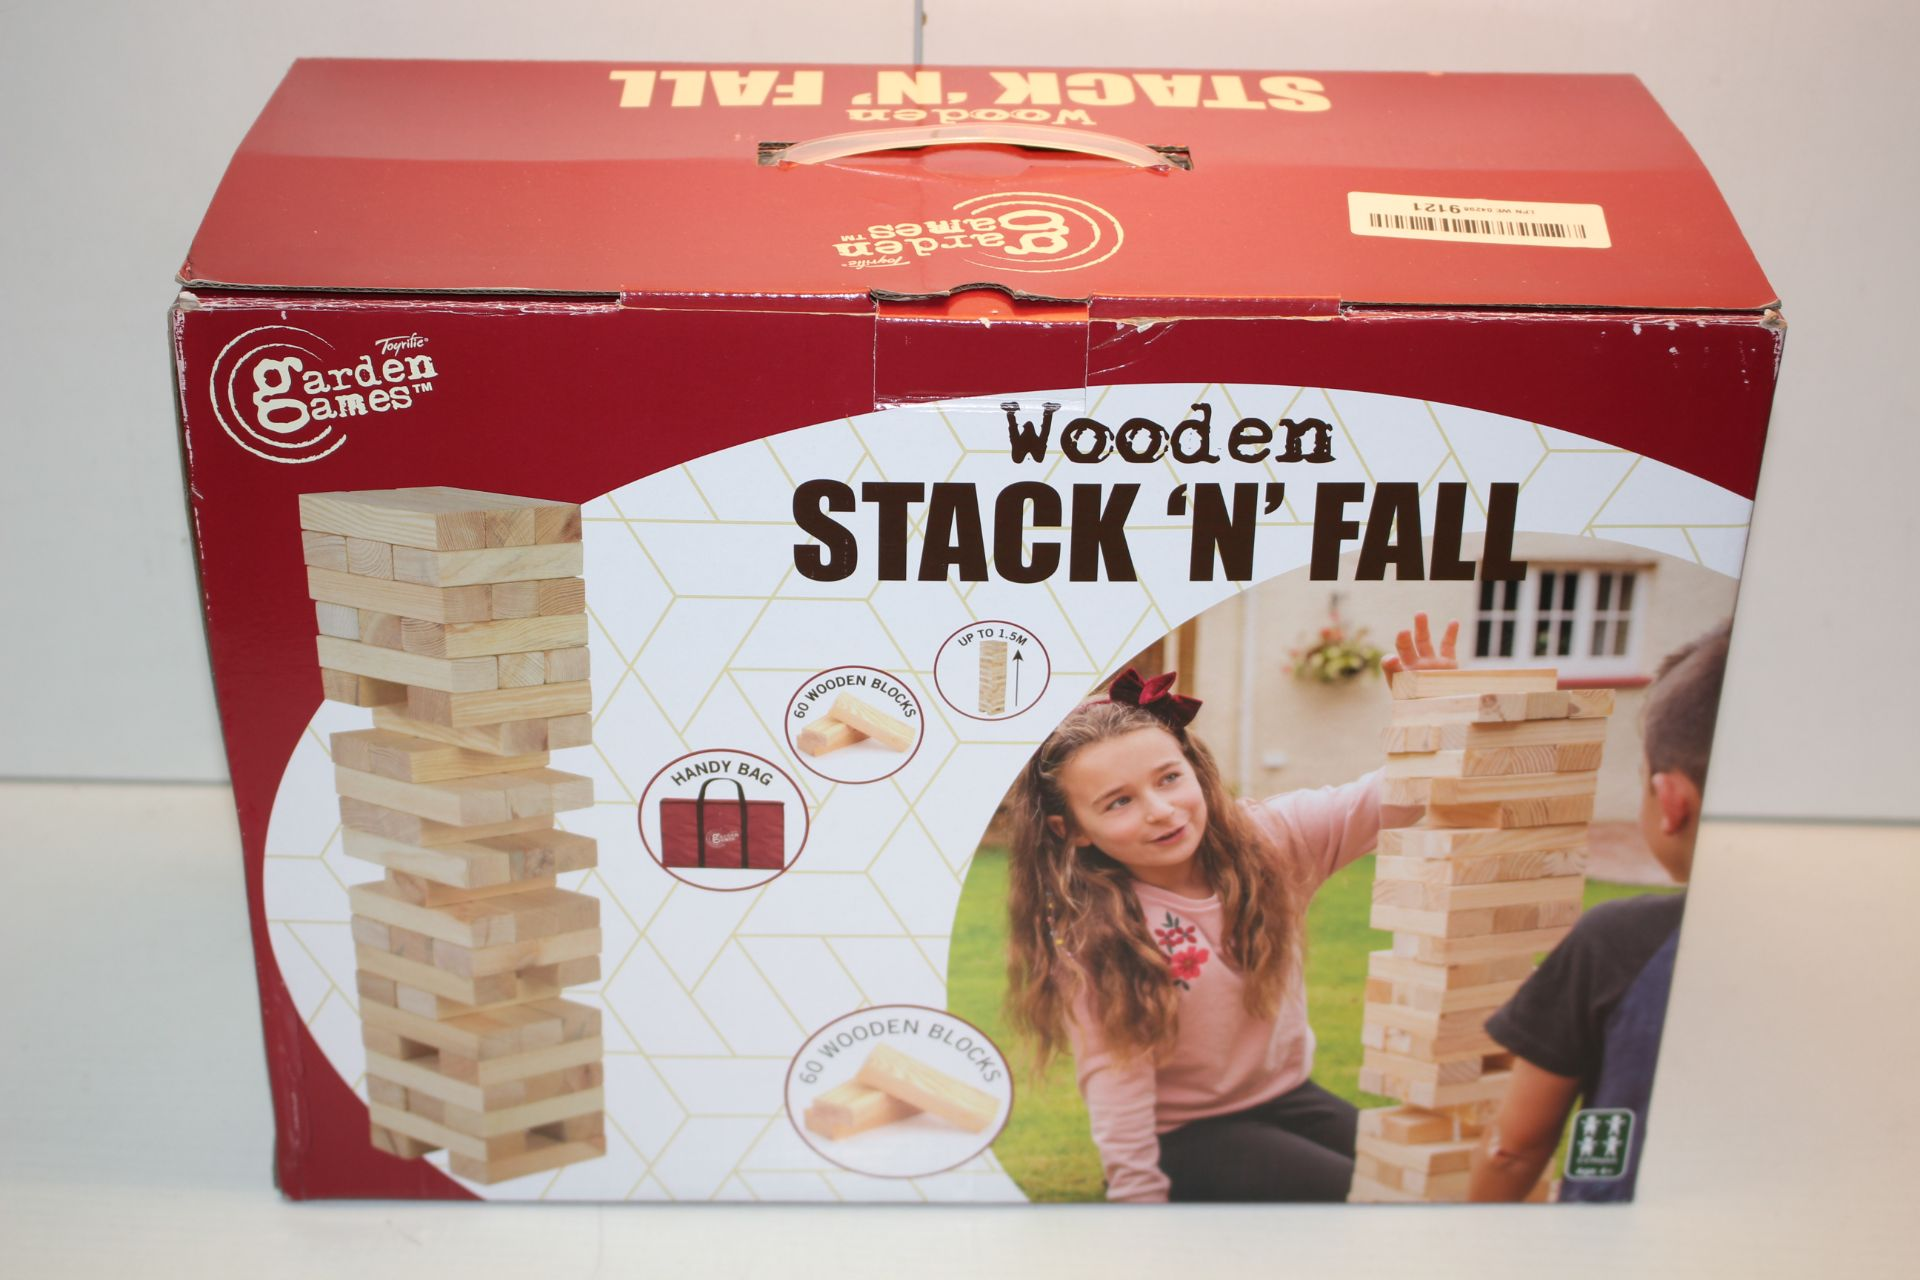 BOXED GARDEN GAMES WOODEN STACK 'N' FALL Condition ReportAppraisal Available on Request- All Items